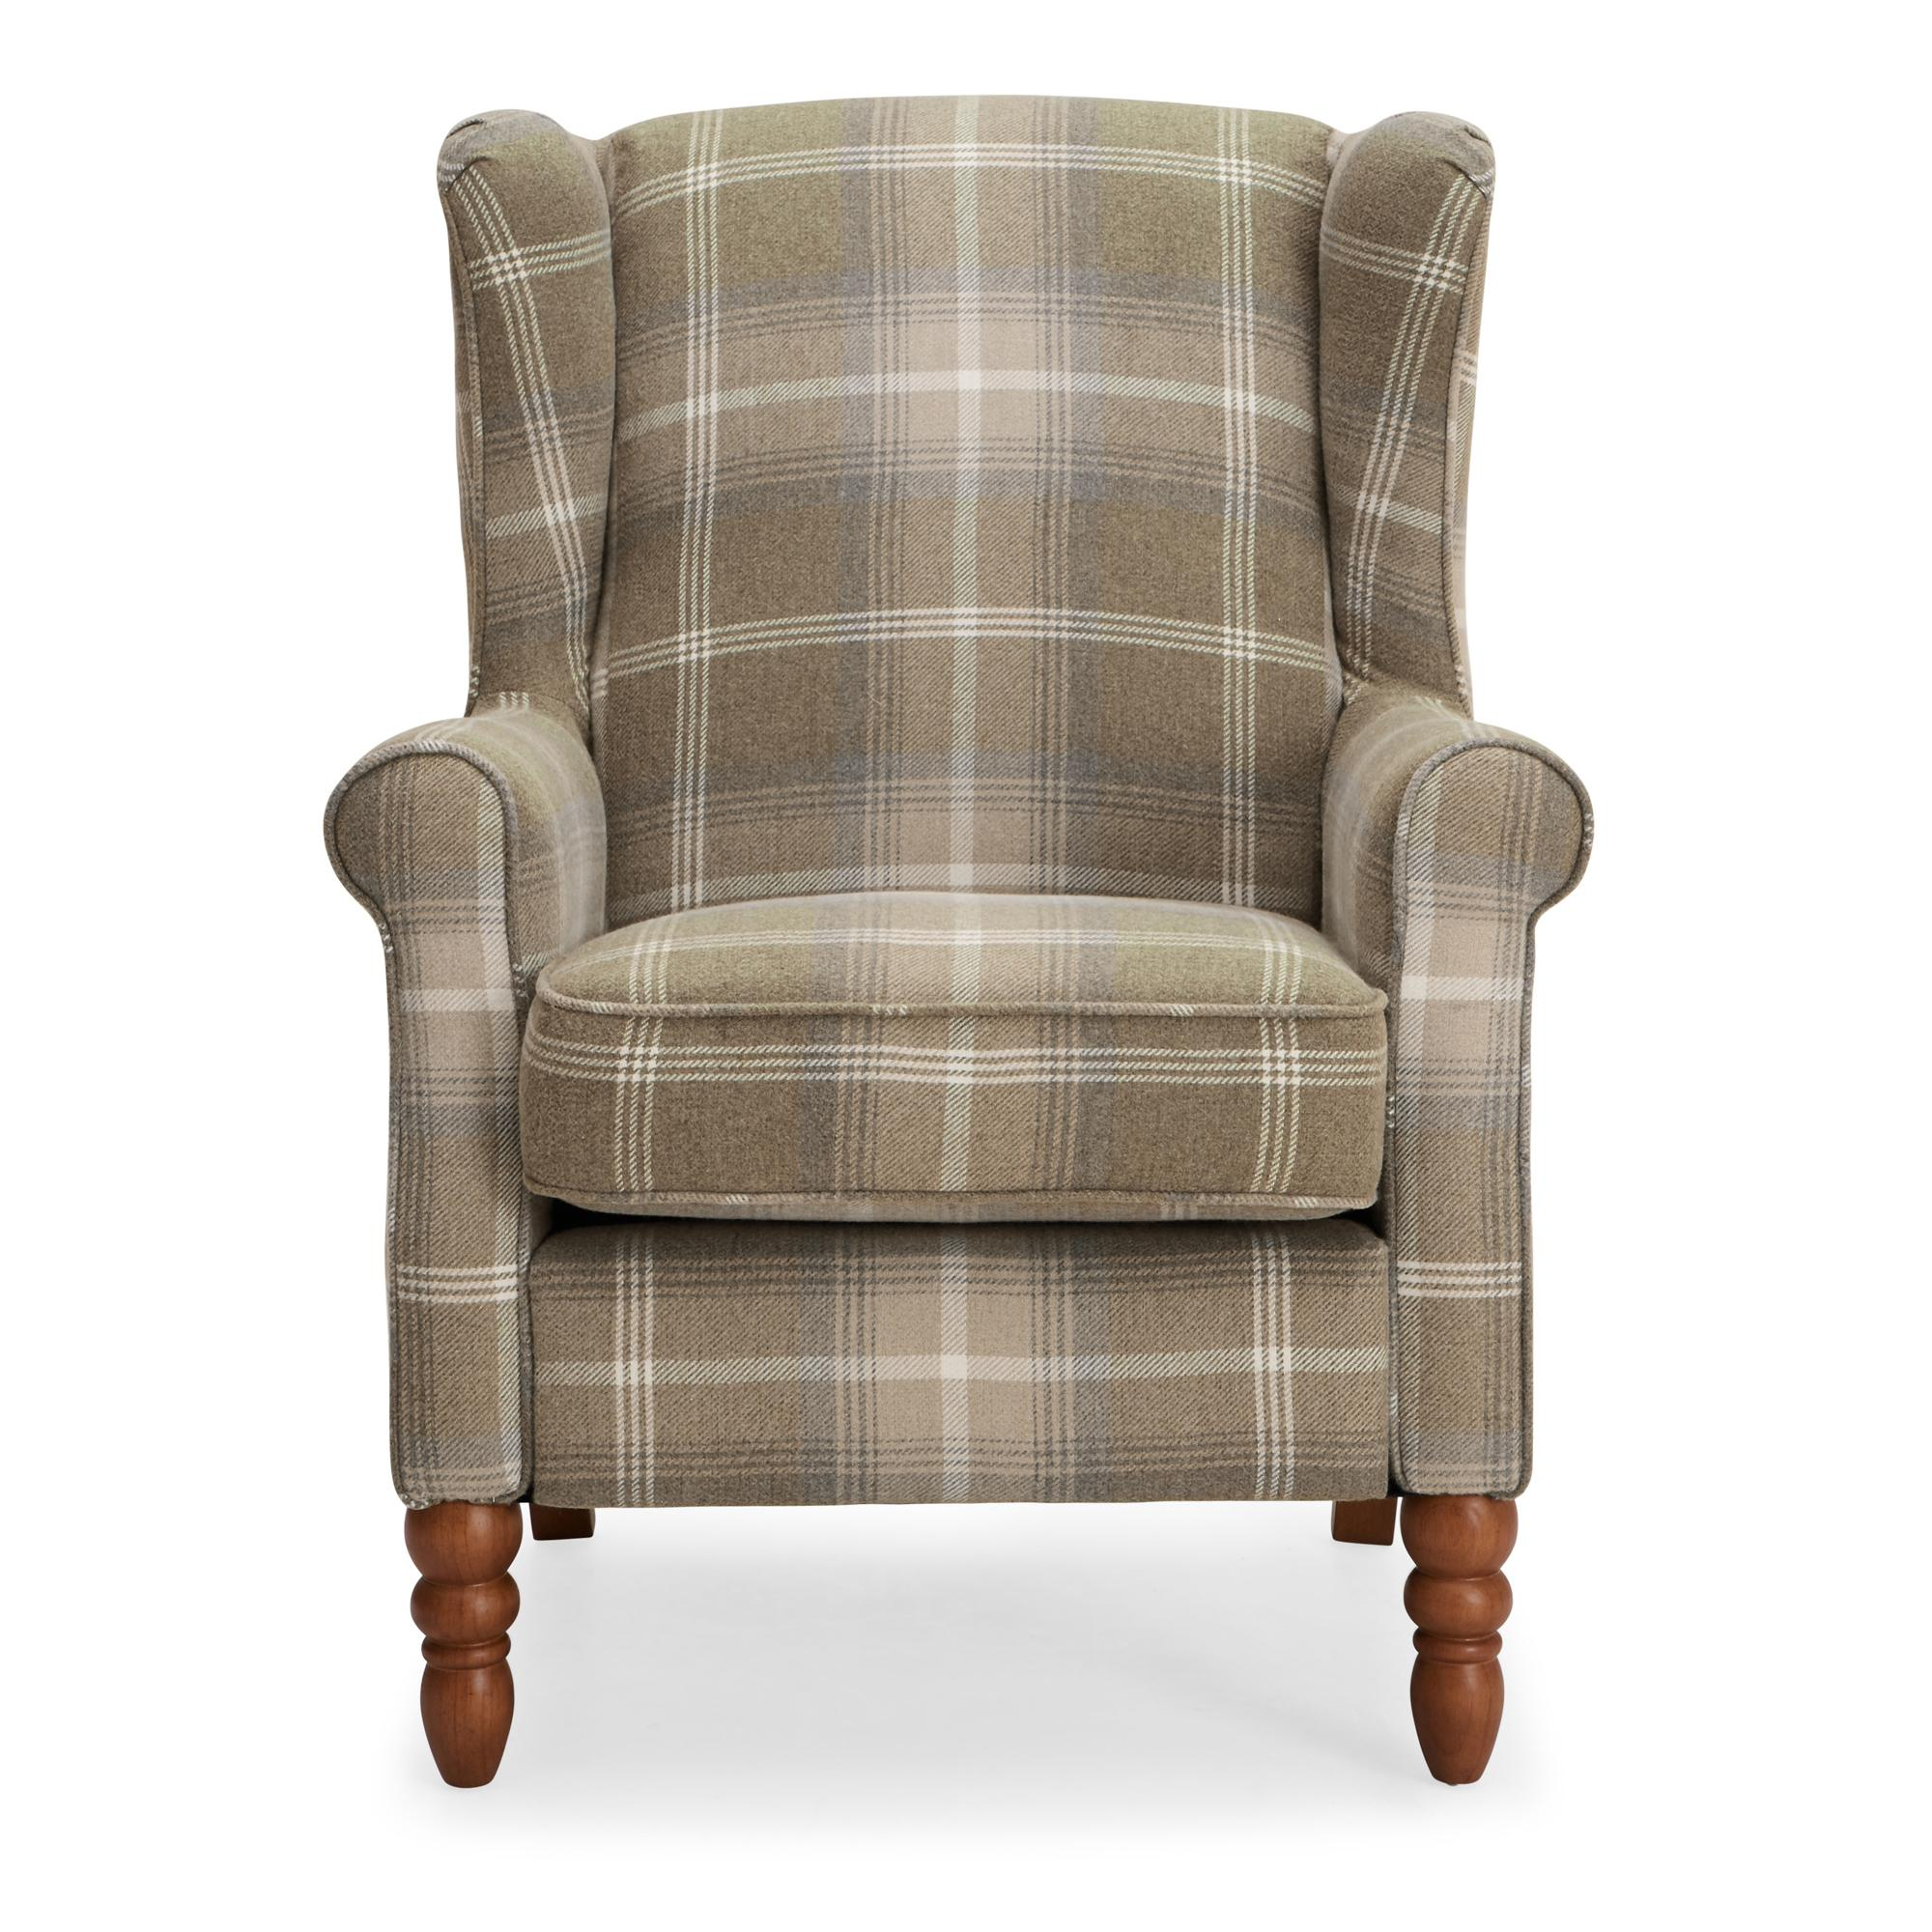 Oswald Check Wingback Armchair - Natural